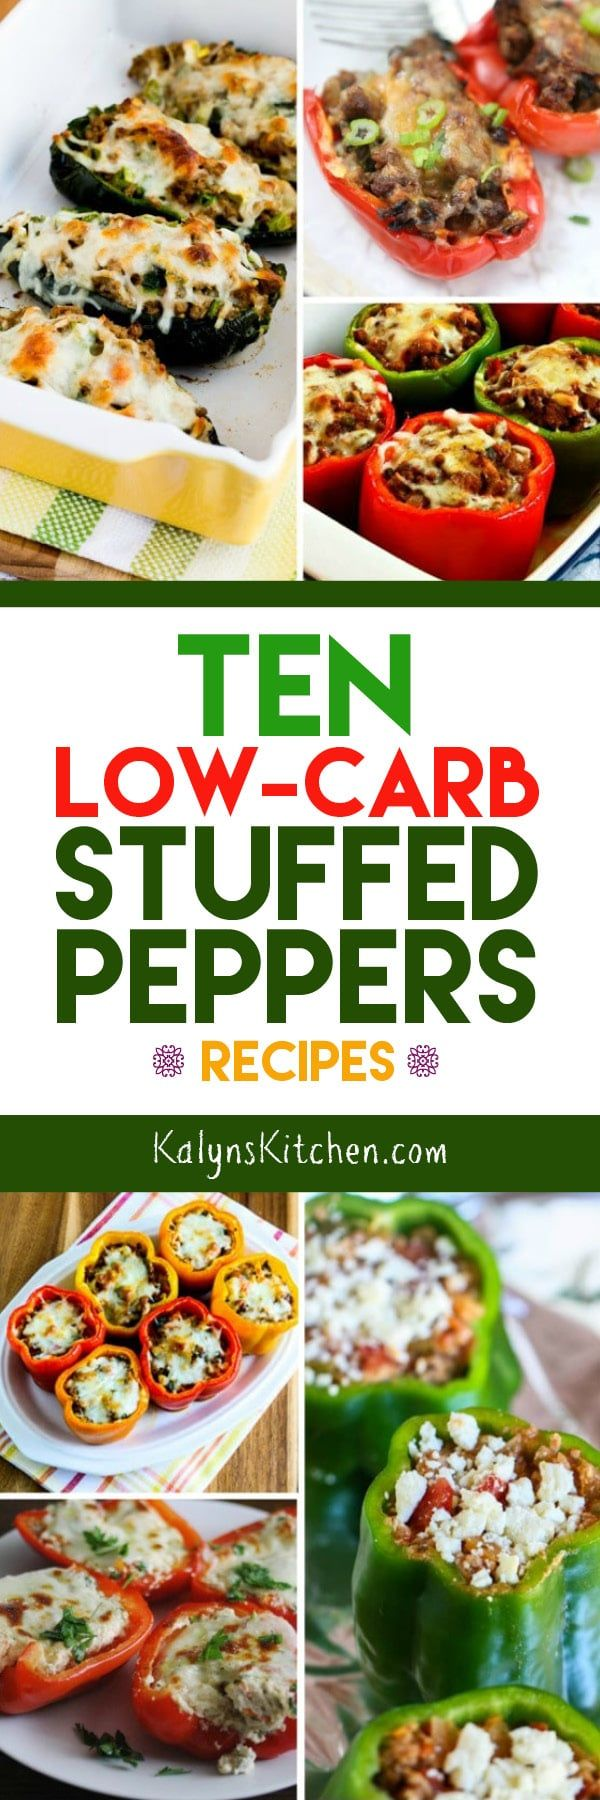 Ten Low-Carb Stuffed Peppers Recipes found on KalynsKitchen.com